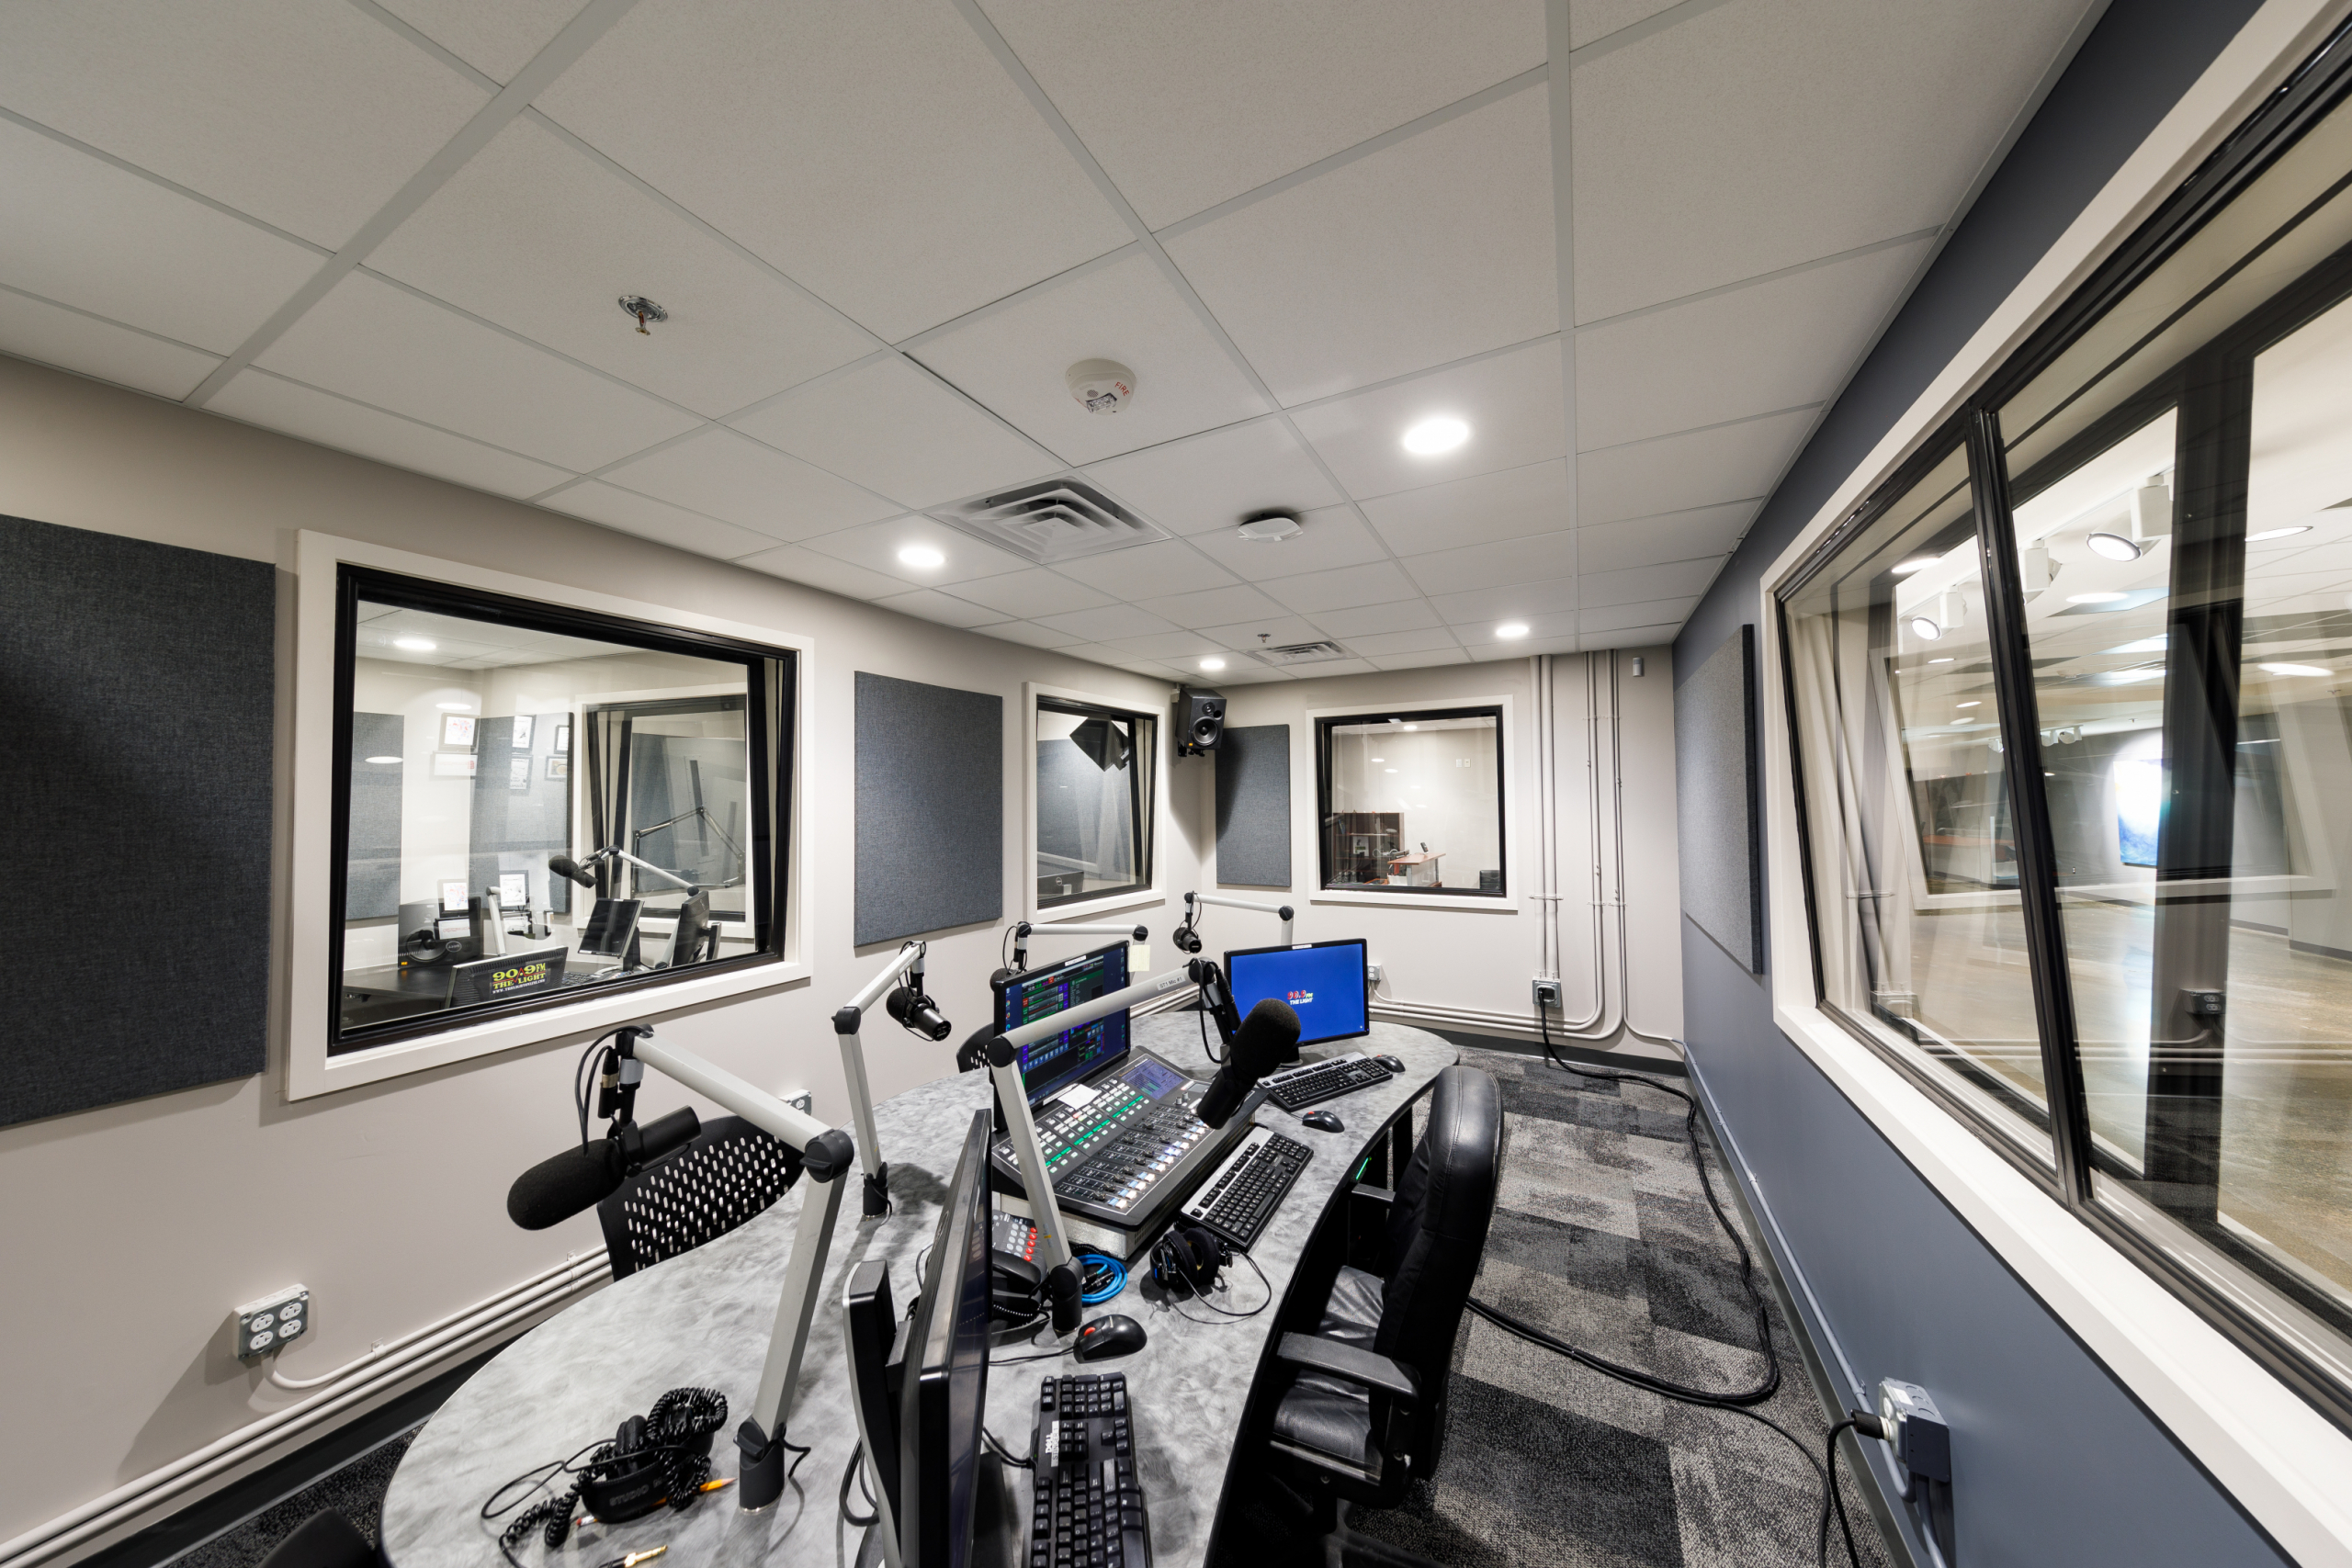 On-campus radio station celebrates grand opening of new Green Hall location